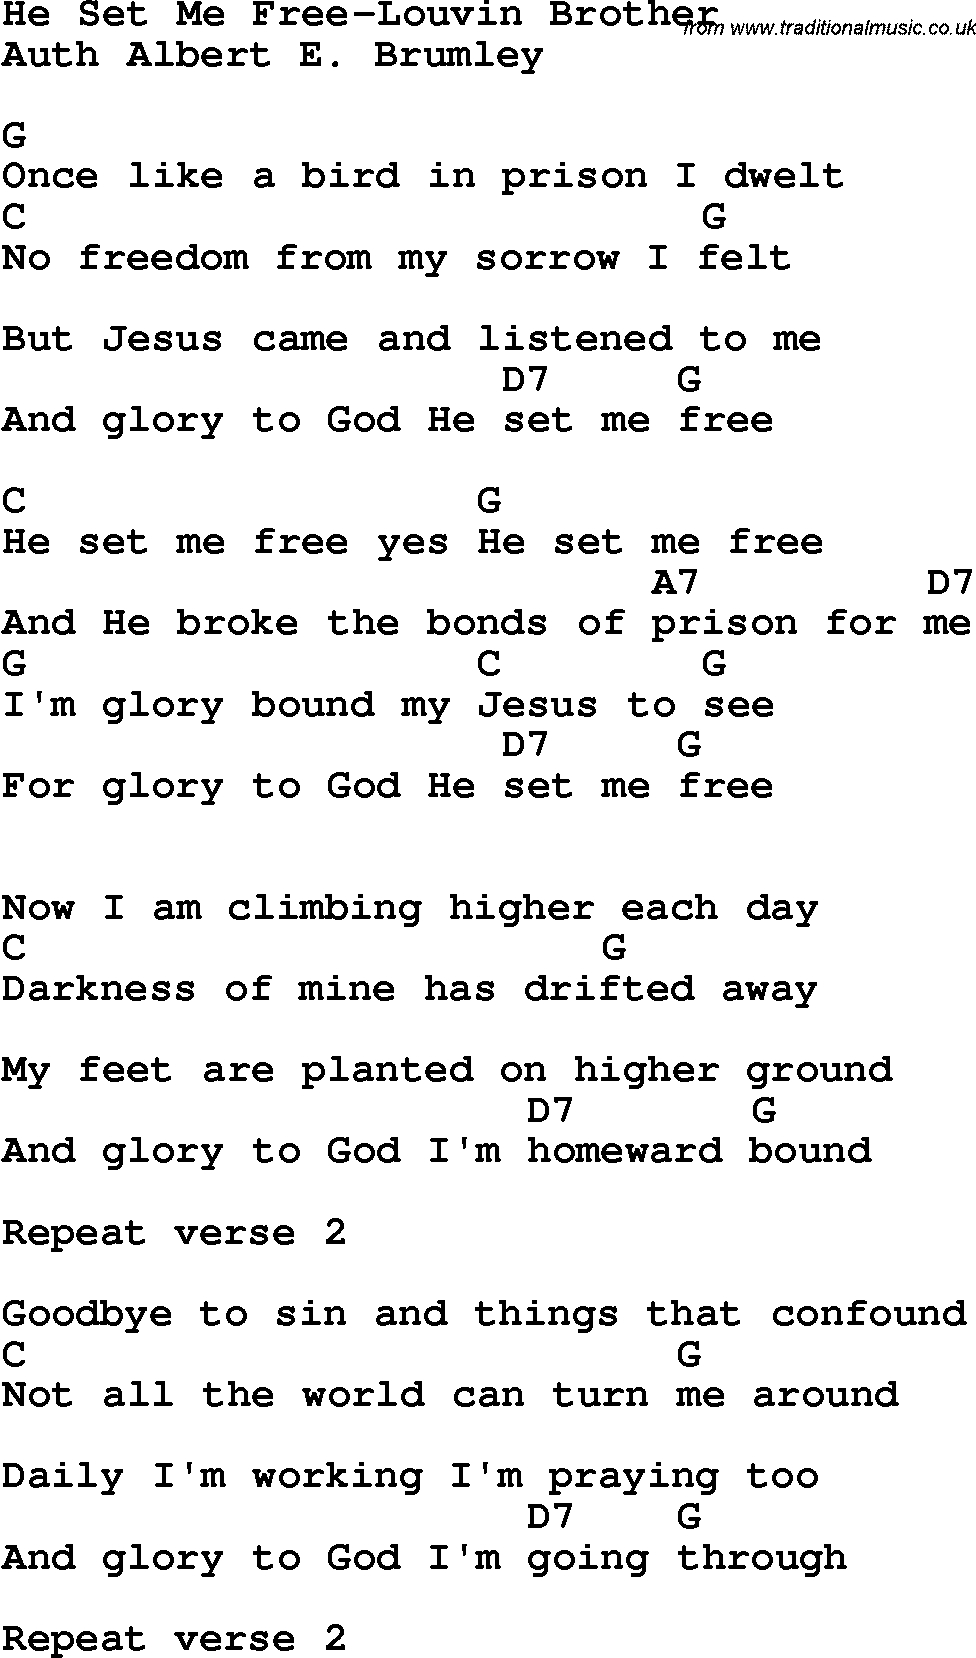 Country, Southern And Bluegrass Gospel Song He Set Me Free-Louvin - Free Printable Gospel Music Lyrics